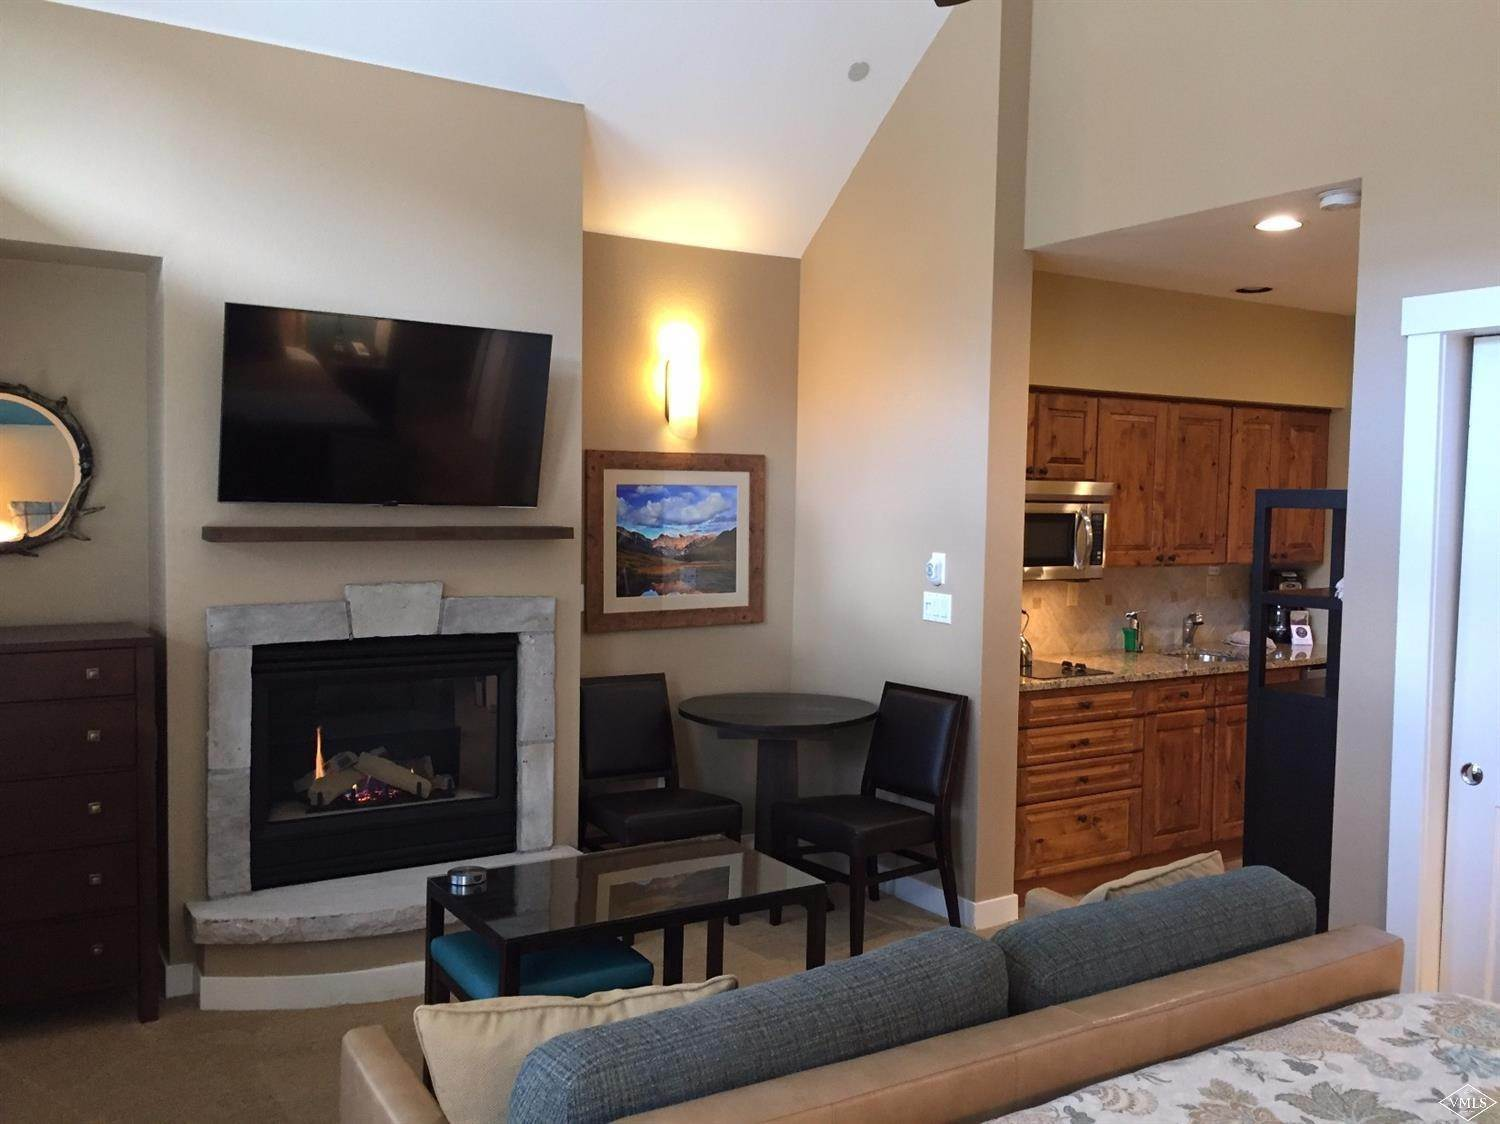 15. fractional ownership prop for Active at 63 Avondale Lane Beaver Creek, Colorado 81620 United States